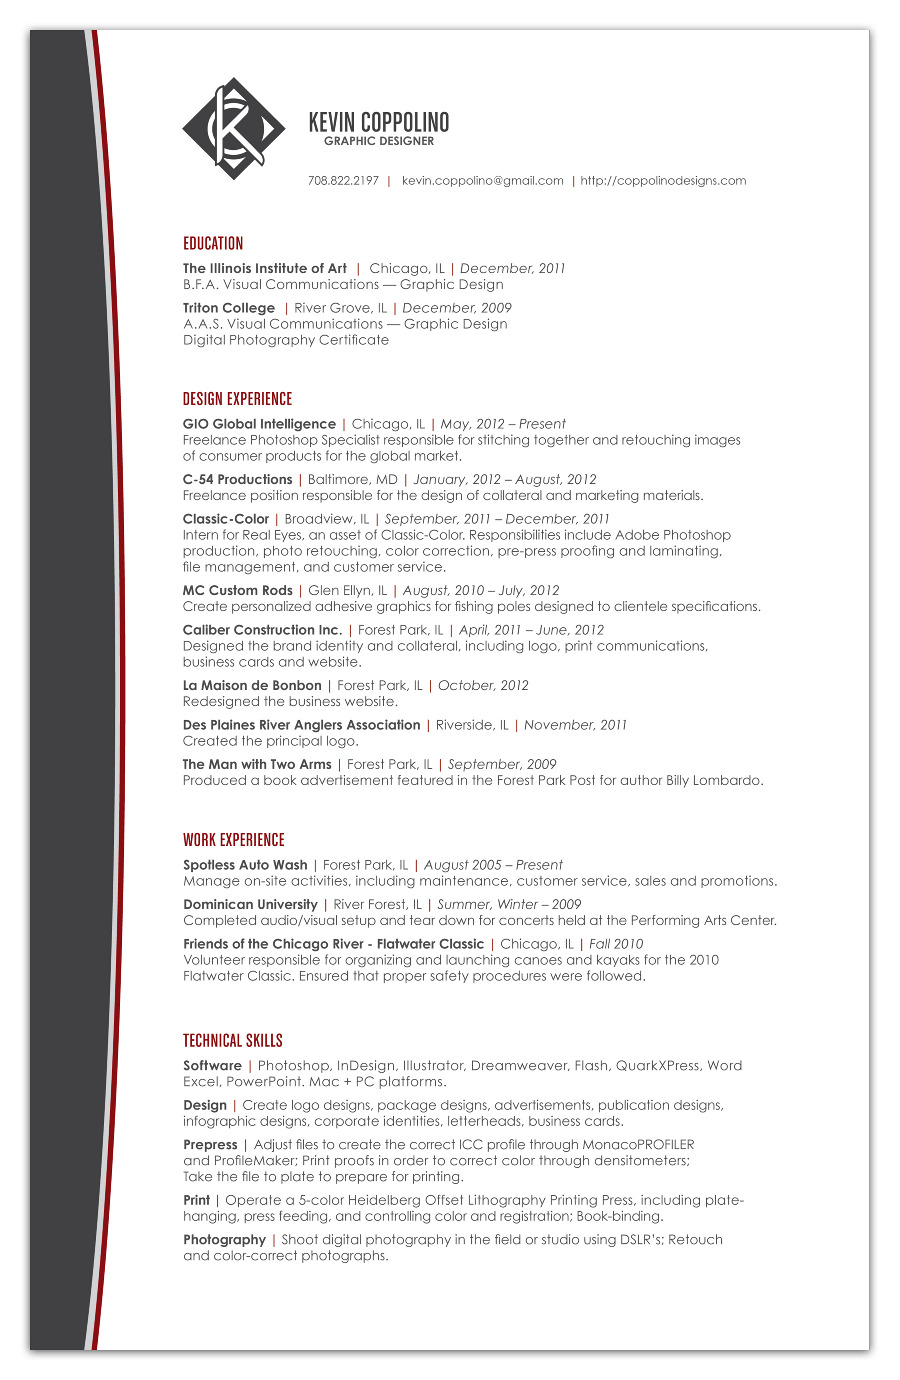 job description of cashier at home depot professional resume job description of cashier at home depot cashier job description americas job exchange mcdonald 39 s